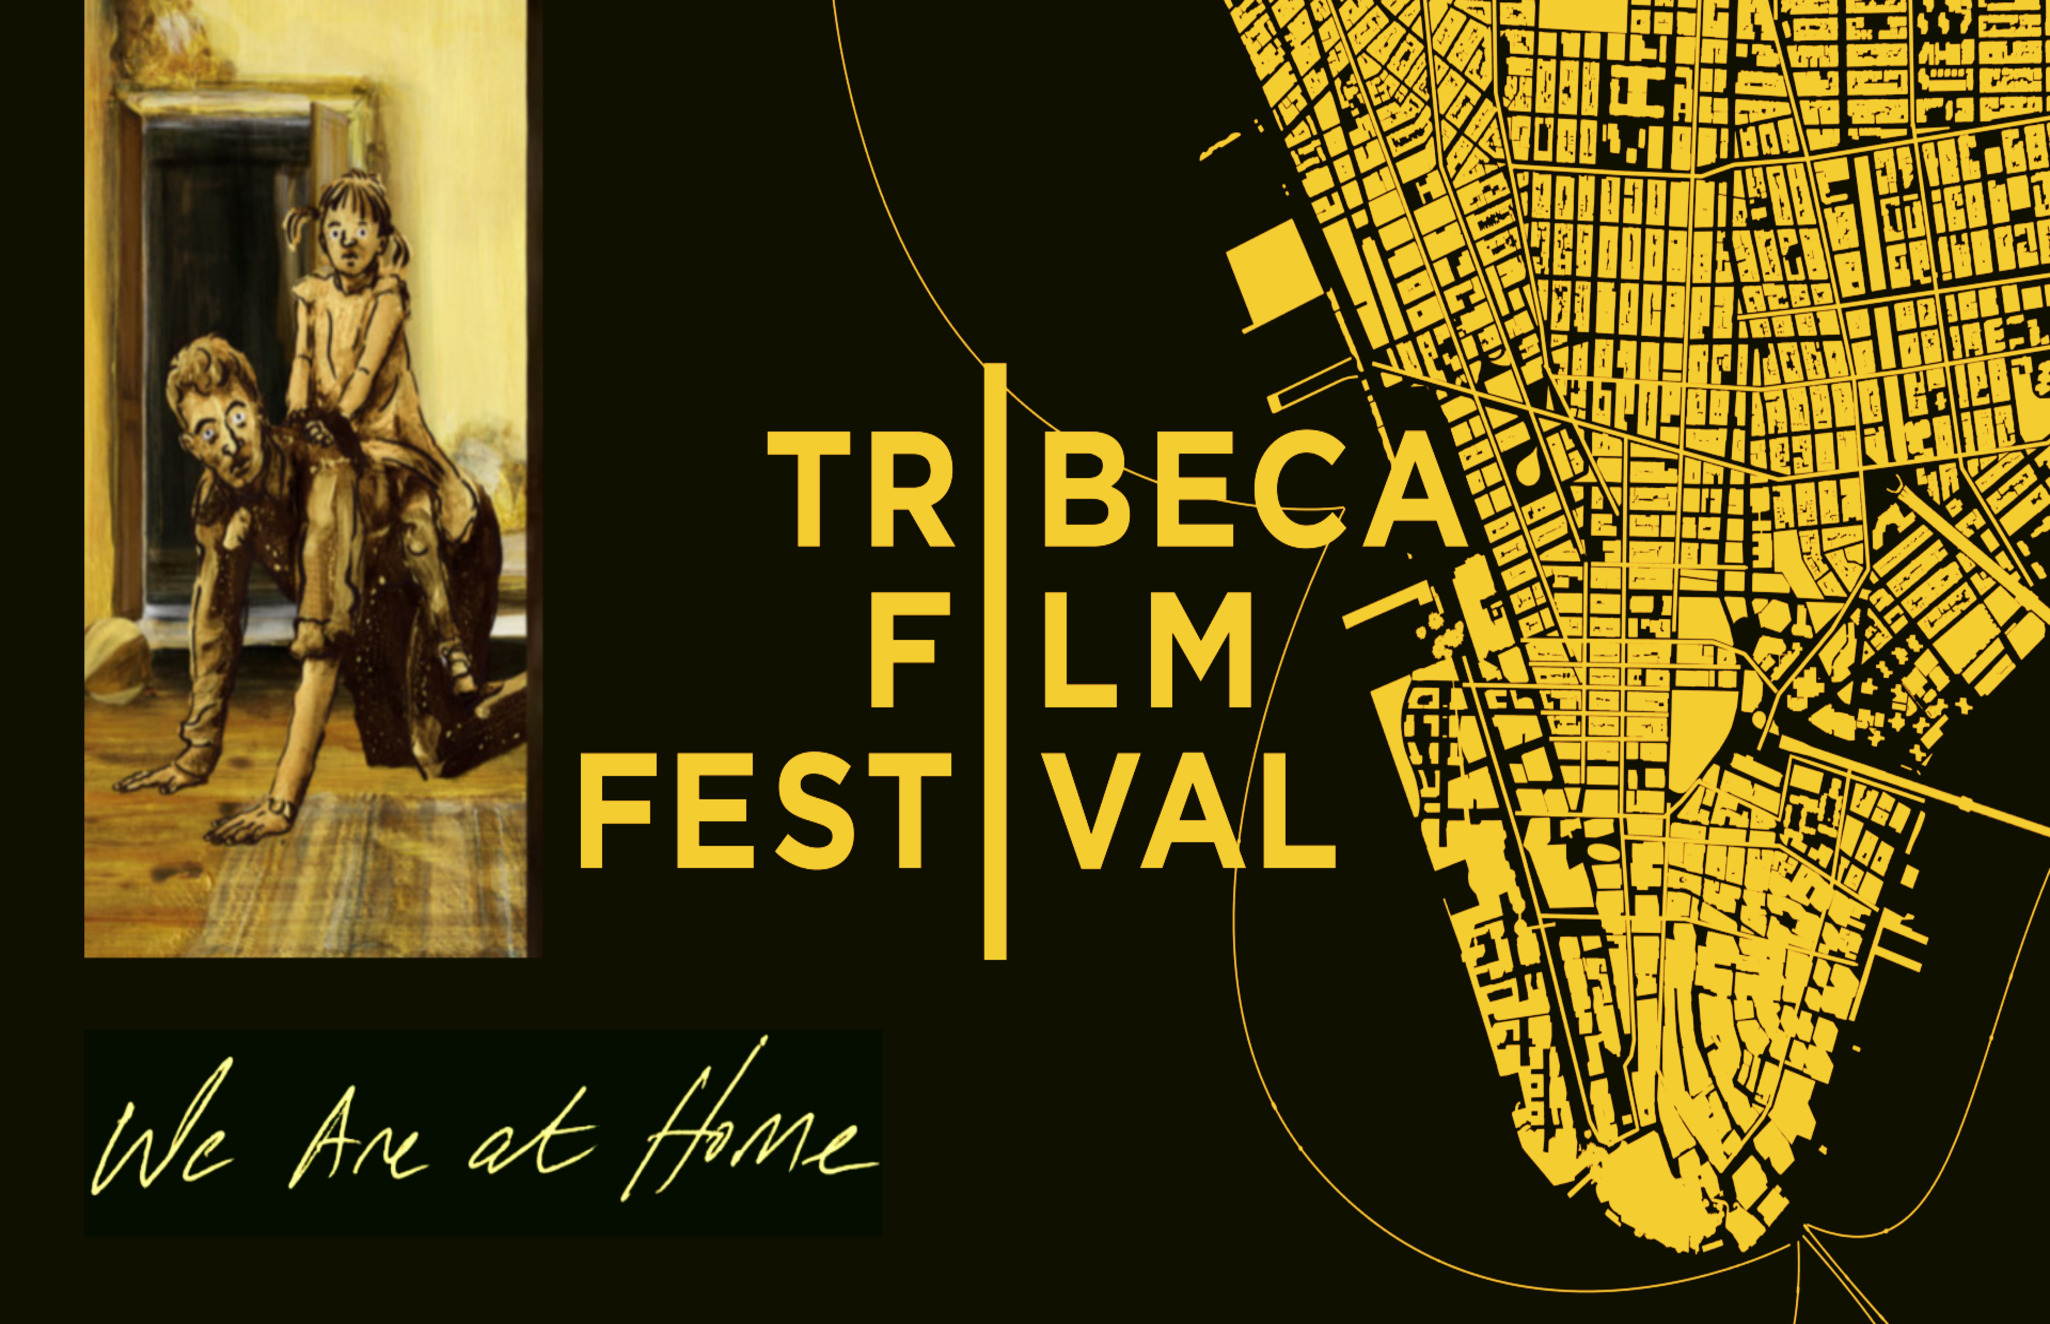 2021 TRIBECA FILM FESTIVAL | Official selection of WE ARE AT HOME as part of Storyscapes competition at Tribeca 2021